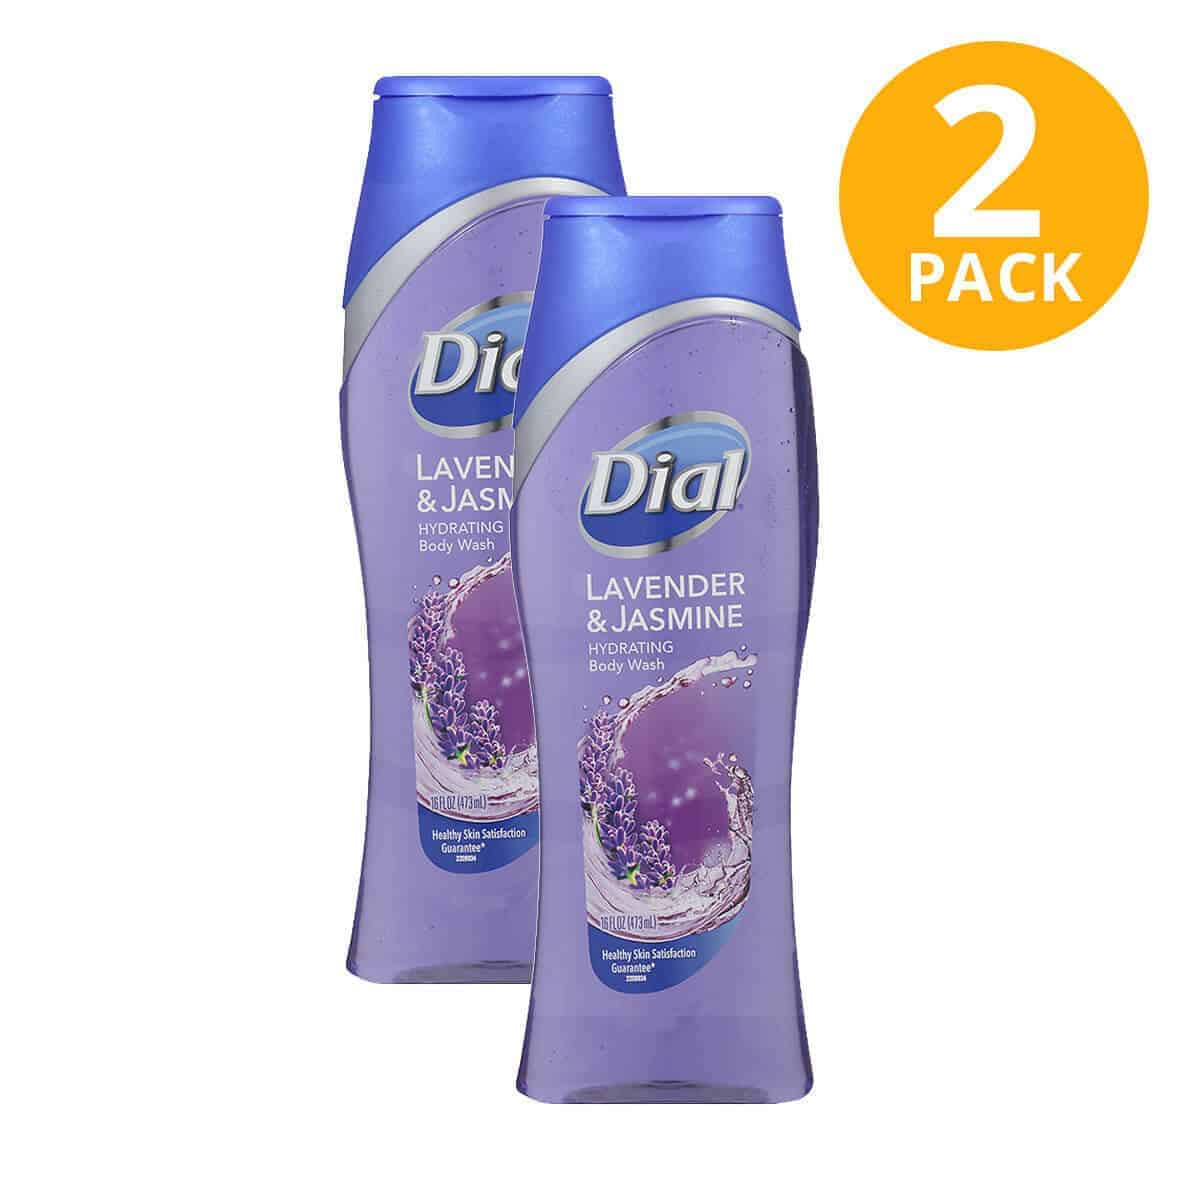 Dial Lavender & Jasmine Hydrating Body Wash, 16 OZ (Pack de 2)